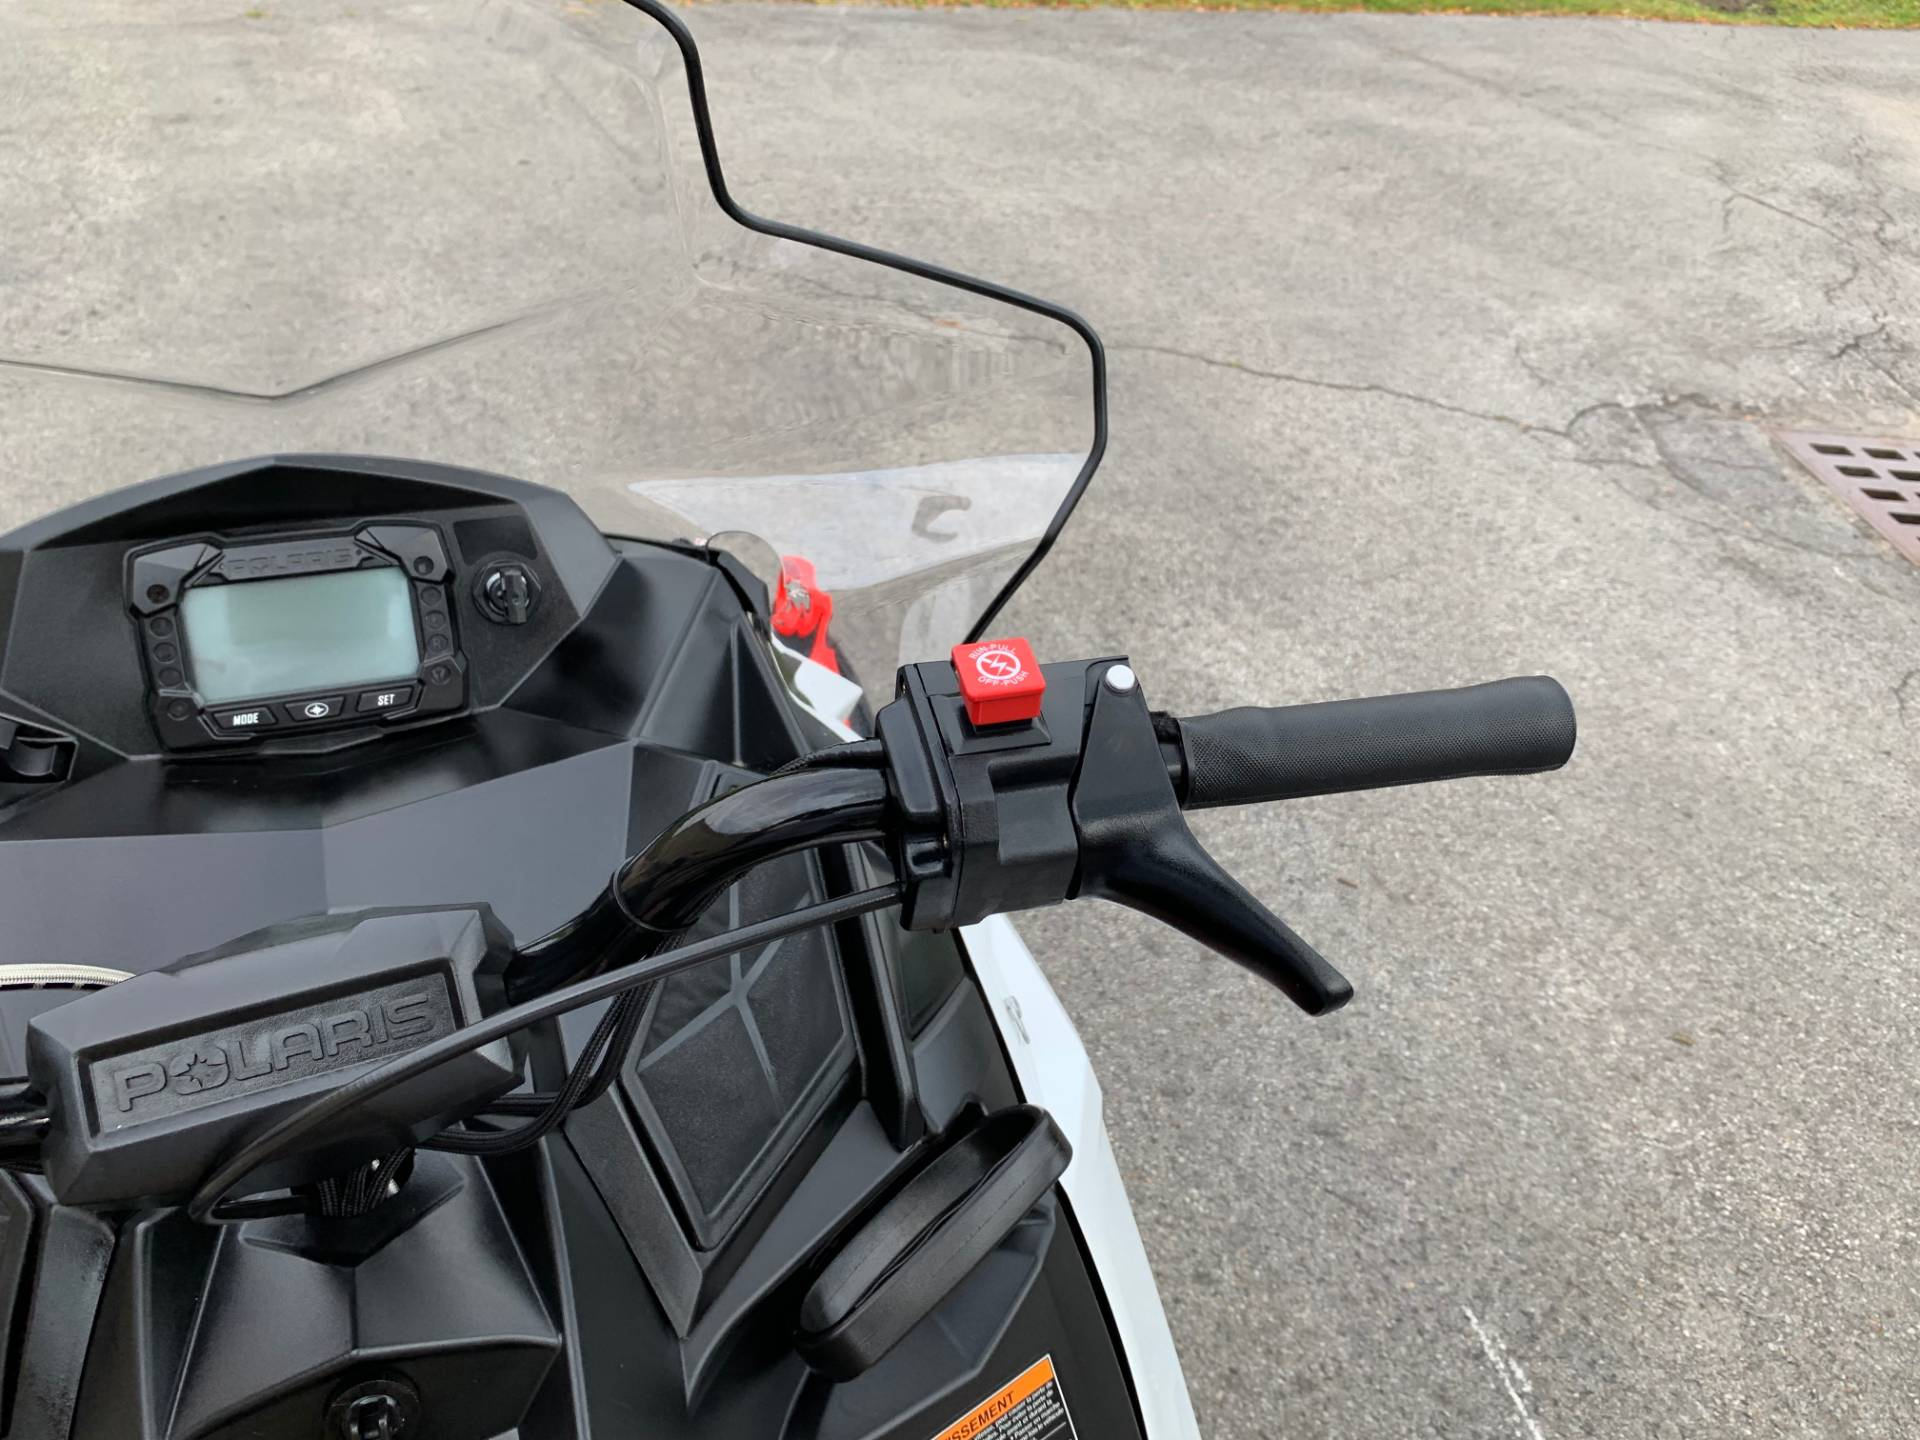 2019 Polaris 550 INDY LXT ES in Herkimer, New York - Photo 17